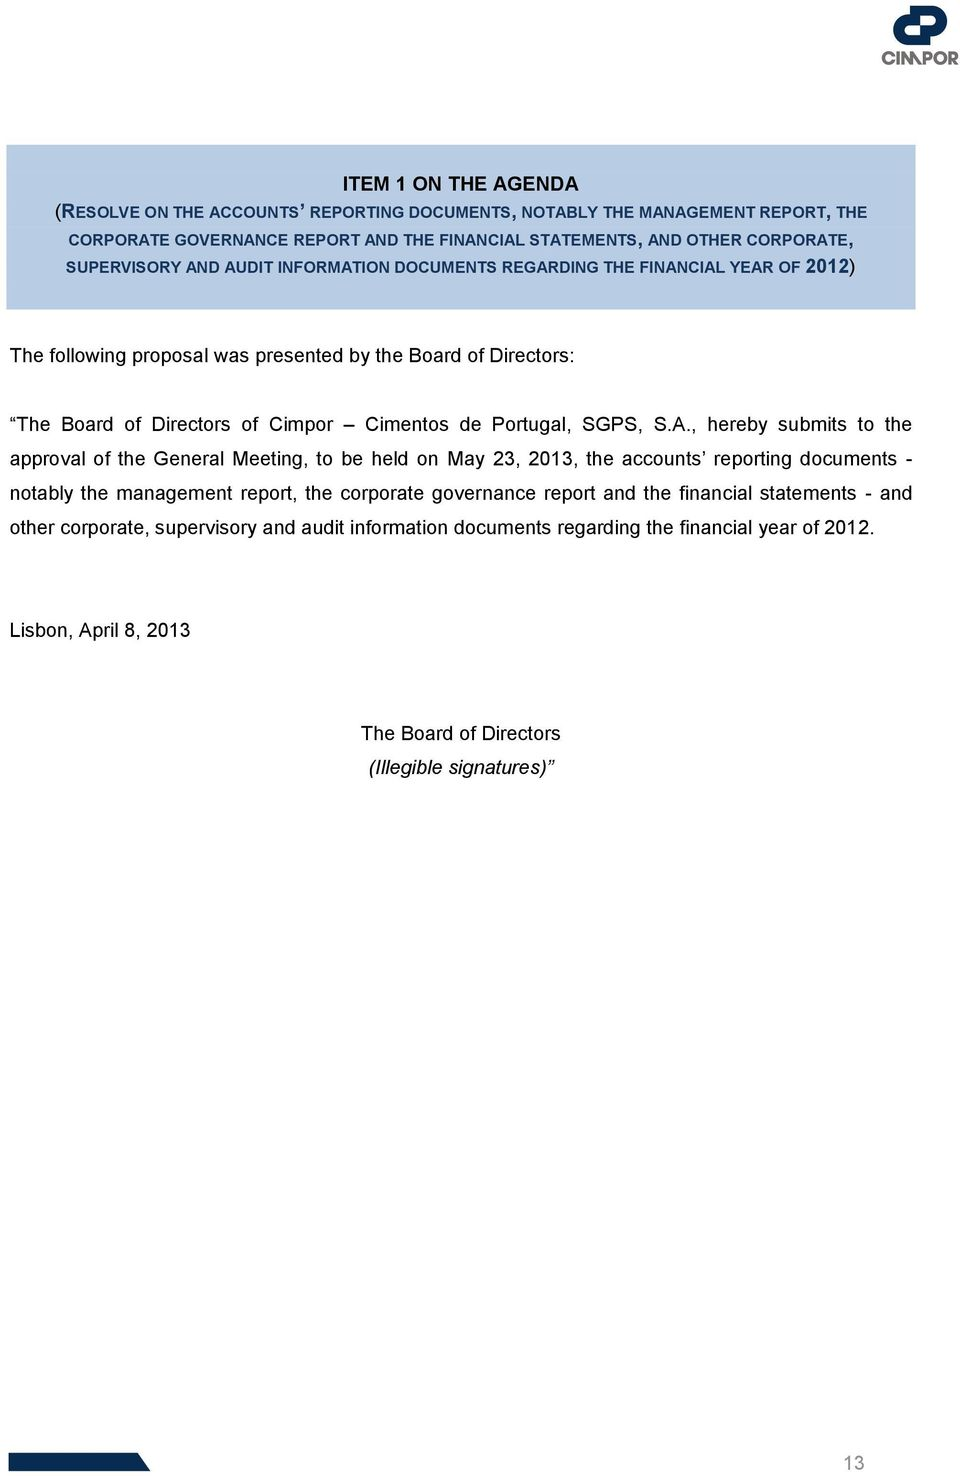 CORPORATE, SUPERVISORY AND AUDIT INFORMATION DOCUMENTS REGARDING THE FINANCIAL YEAR OF 2012) The following proposal was presented by the Board of Directors: The Board of Directors of Cimpor Cimentos